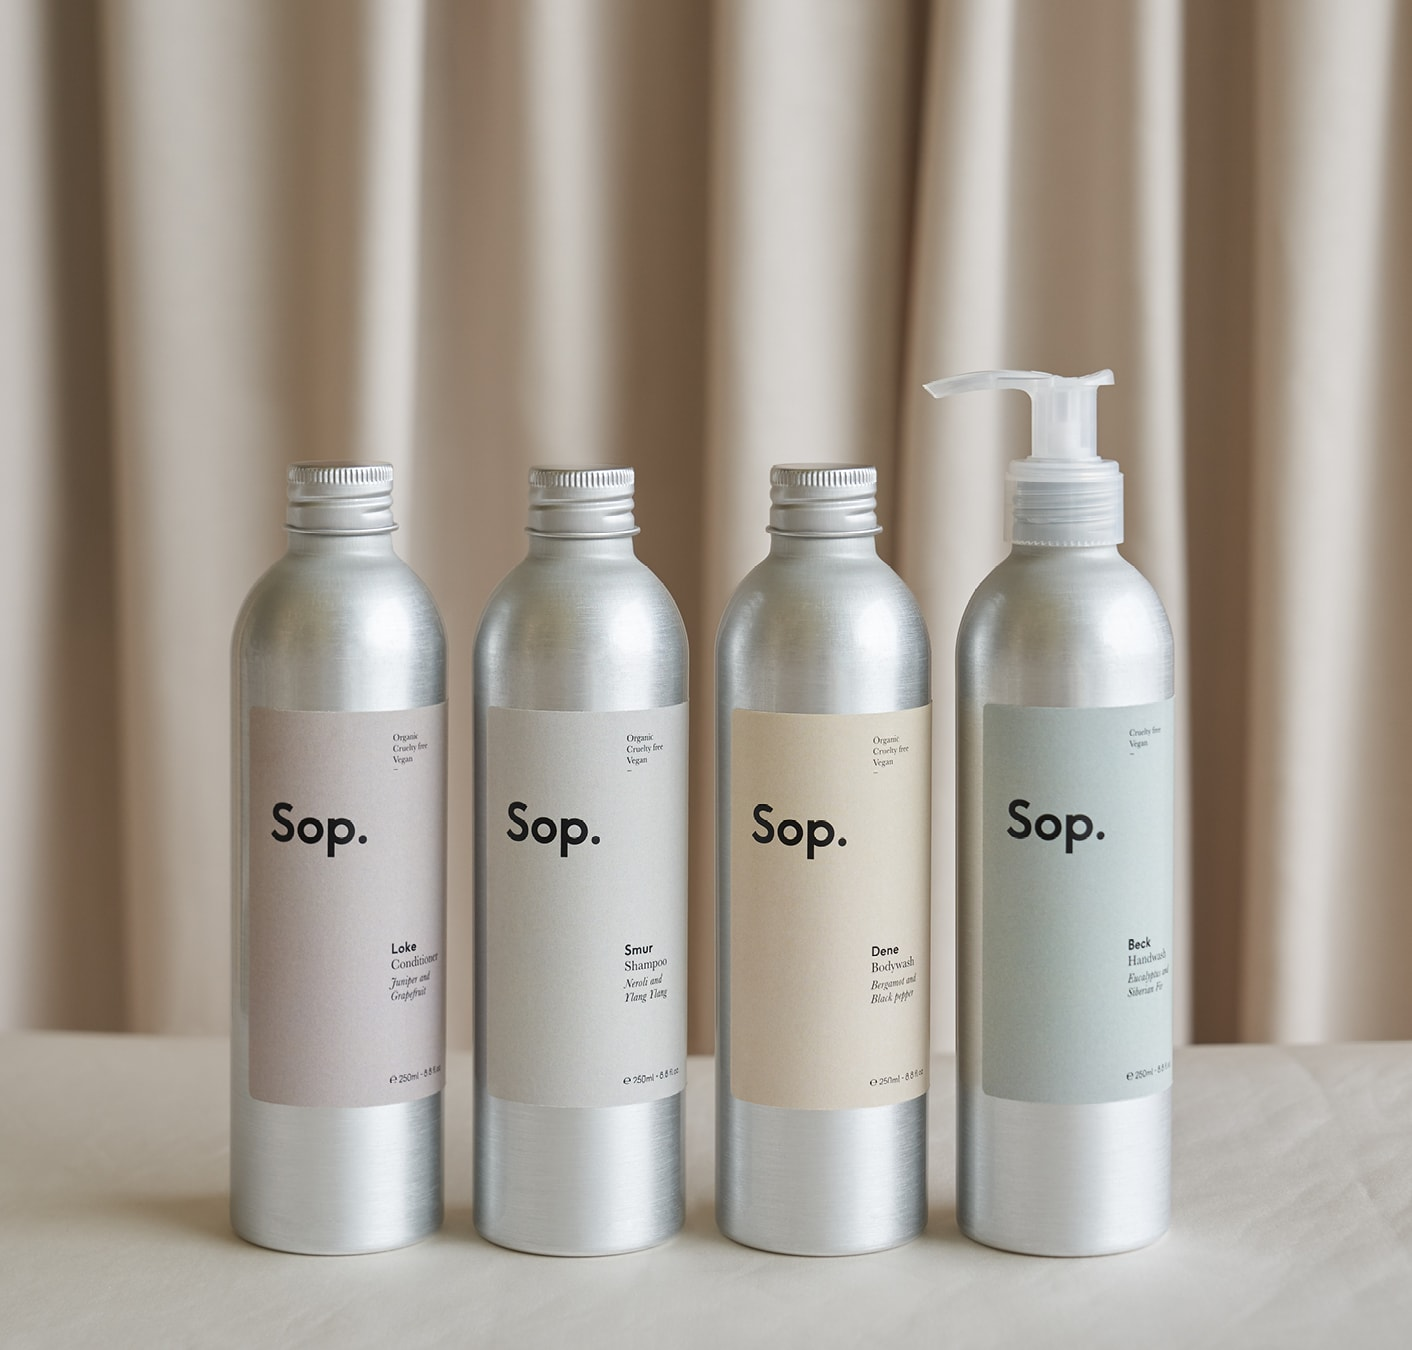 Sop ~ Scents of place 250ml bottles